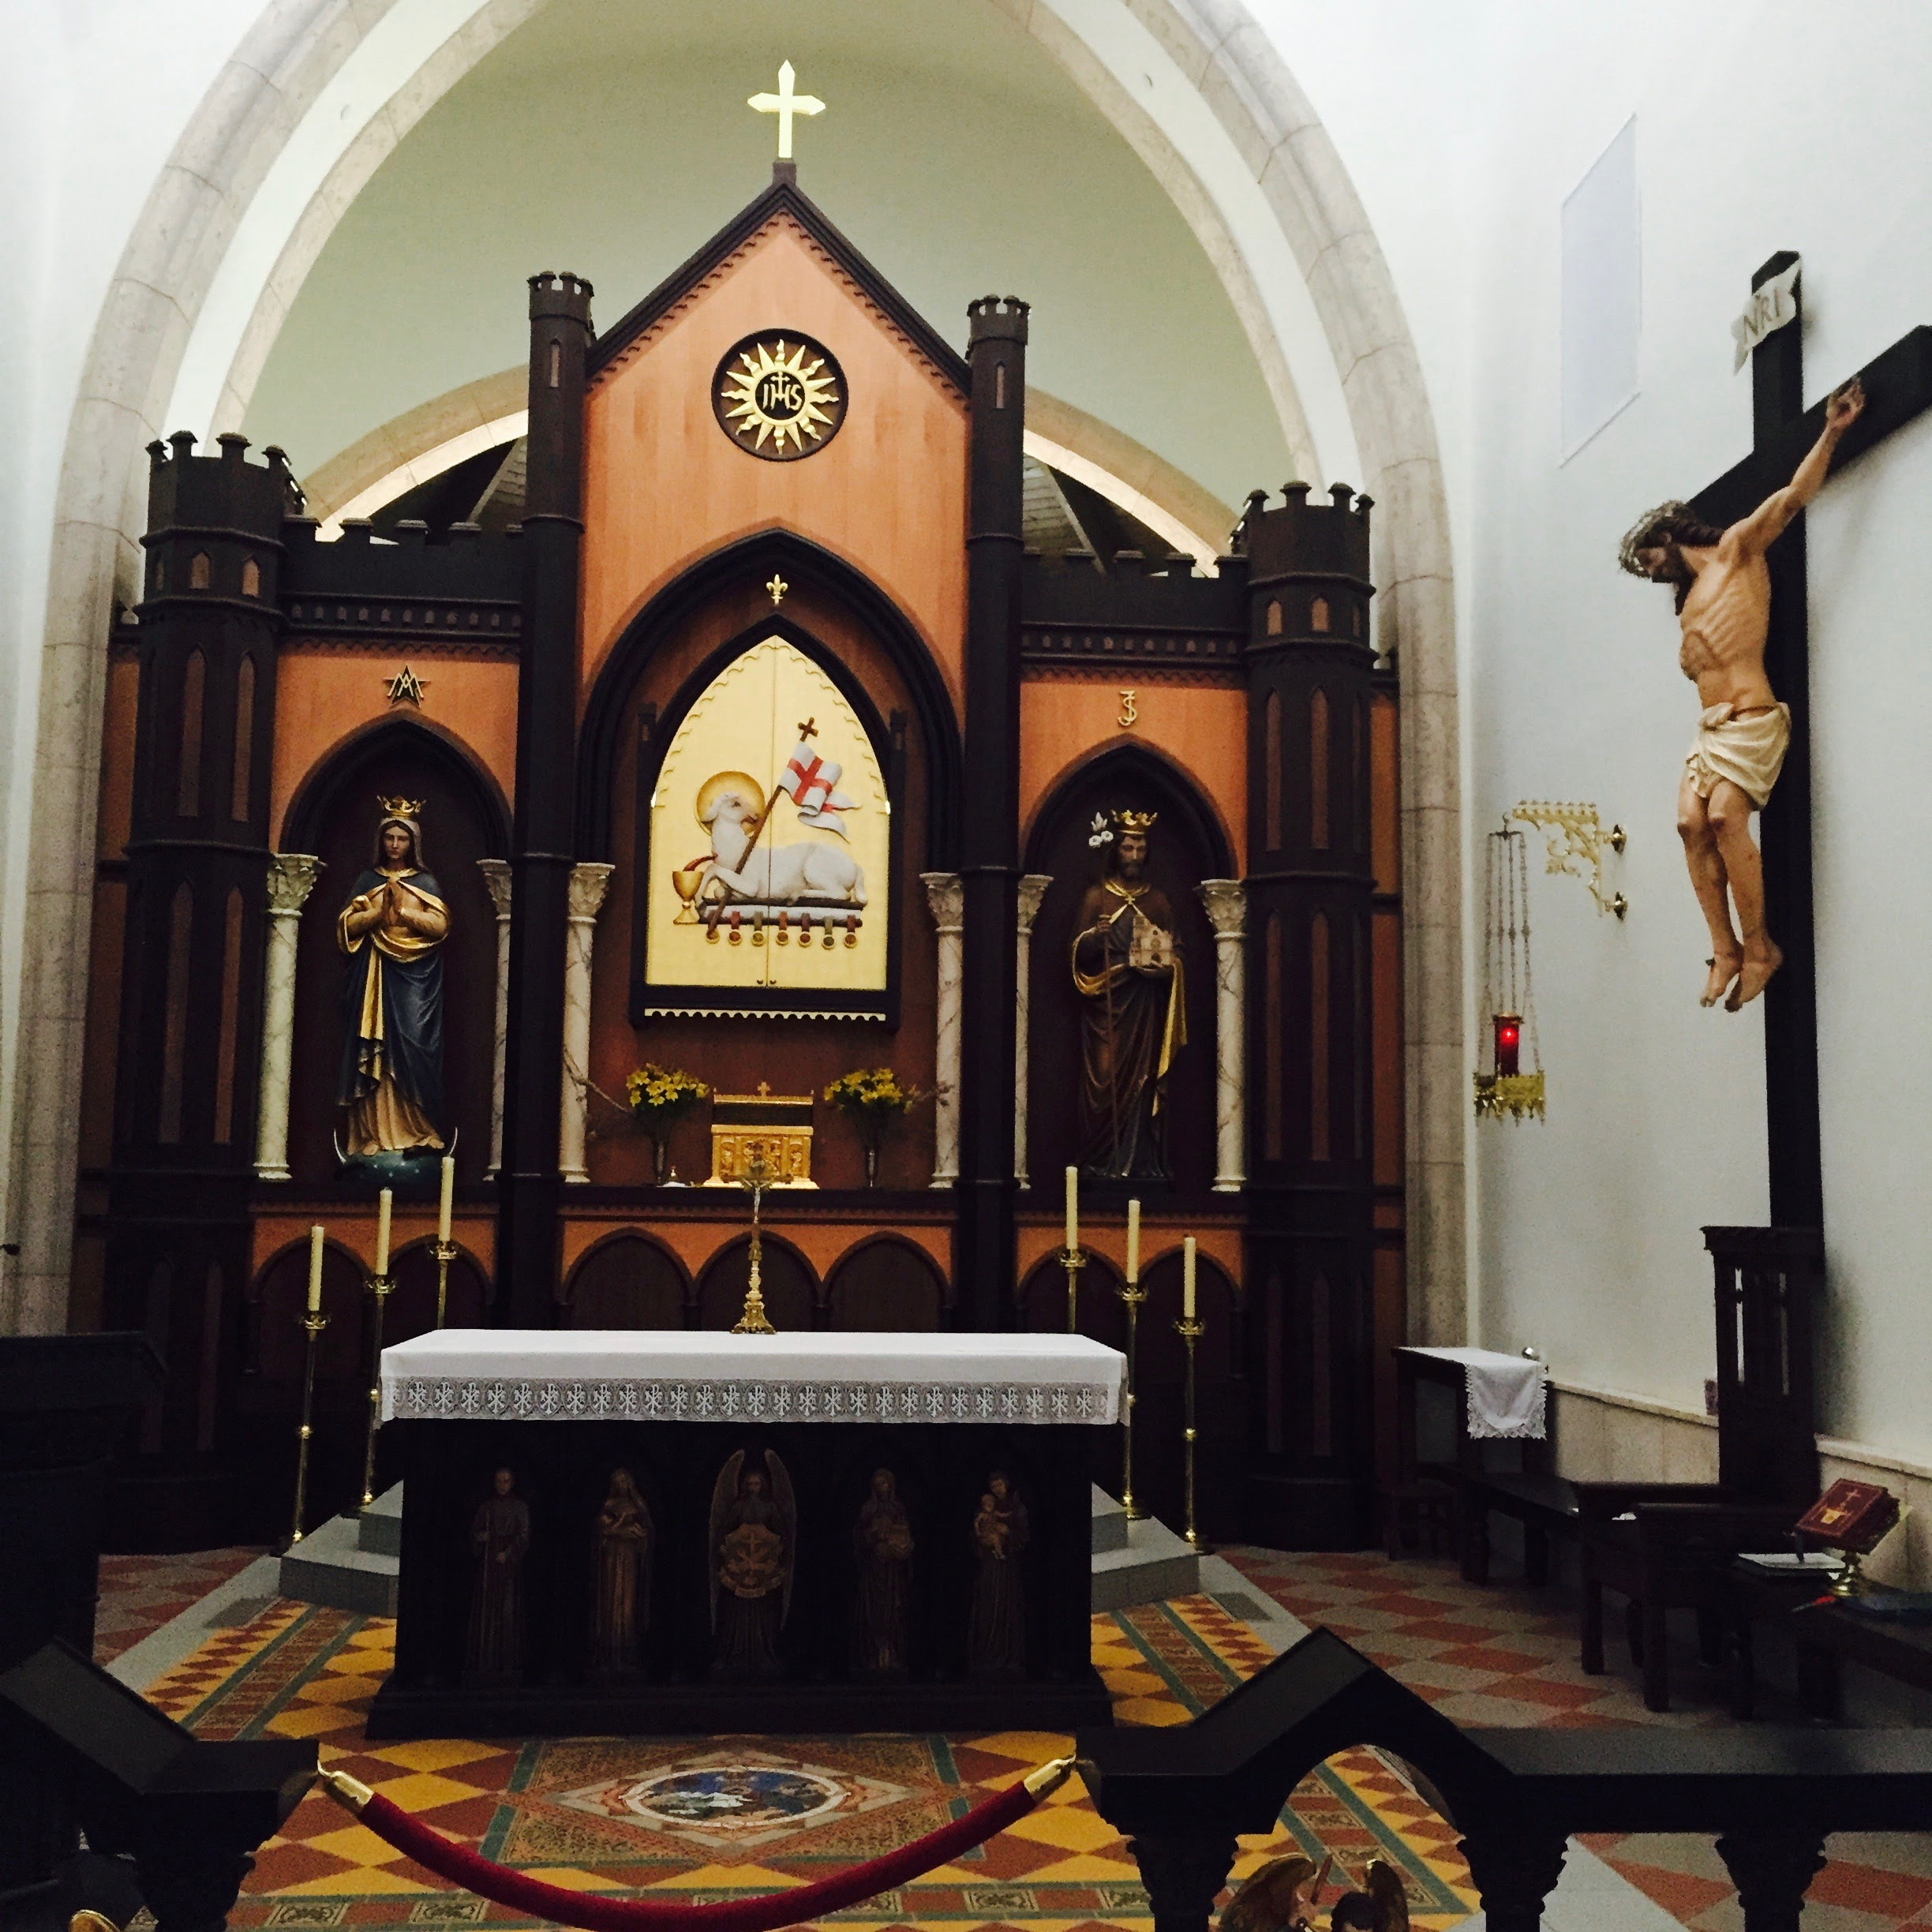 The chapel at Our Lady of Solitude monastery in Tenopah, AZ, where I learned to be silent.